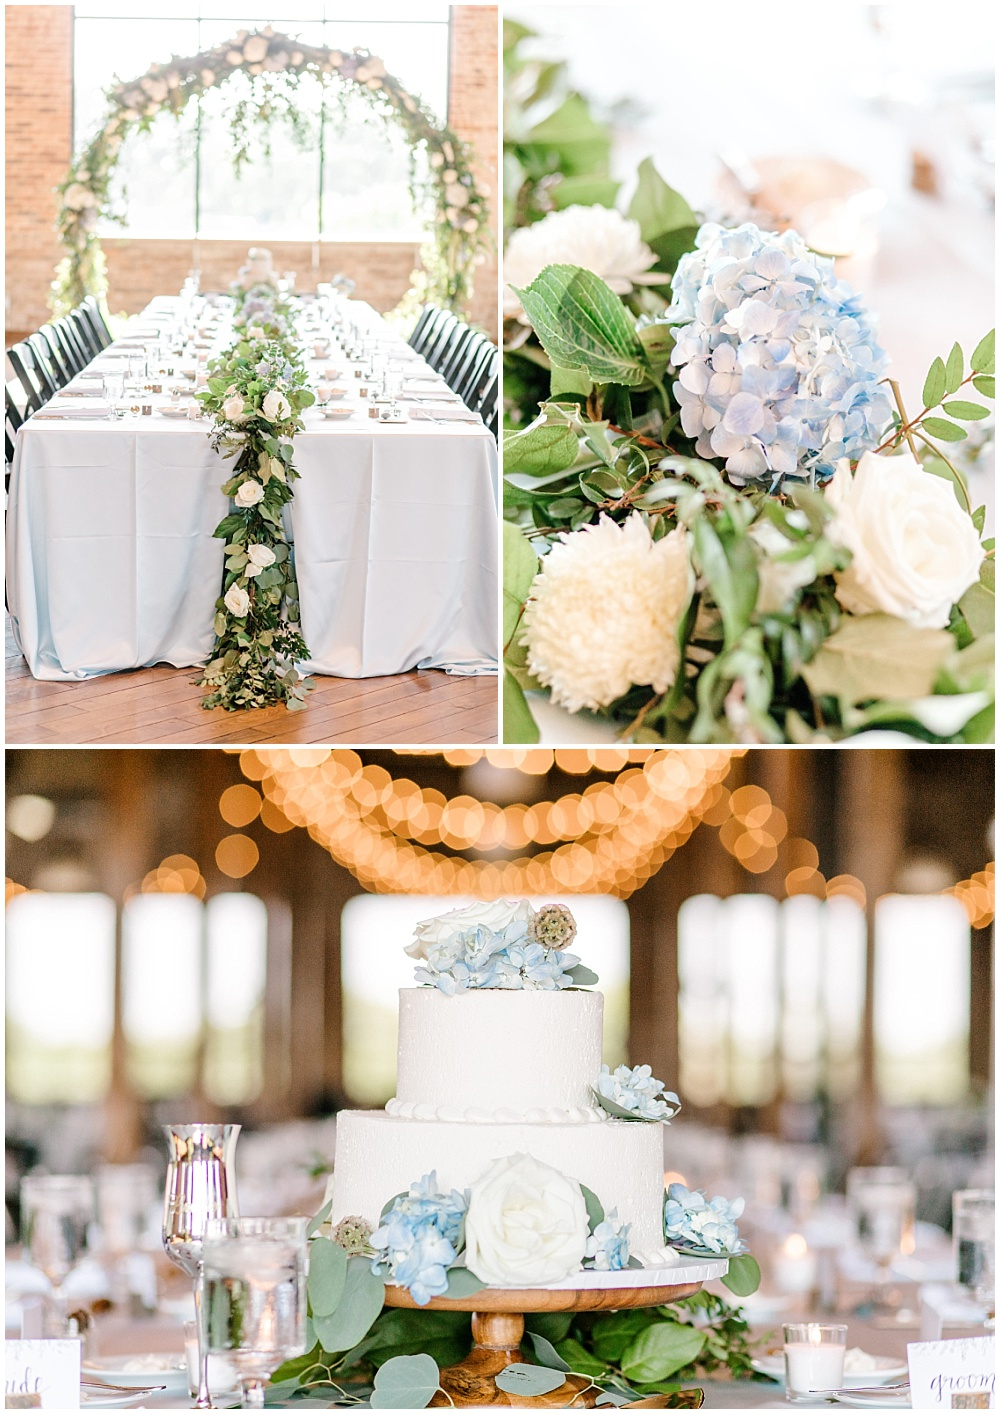 Floral and greenery Head Table arch with greenery cascading down the center; blue and white wedding flowers; simple white cutting cake adorned with fresh flowers and a rustic cake stand | NFL Player Nick Martin's rustic chic summer wedding at the Biltwell Event Center